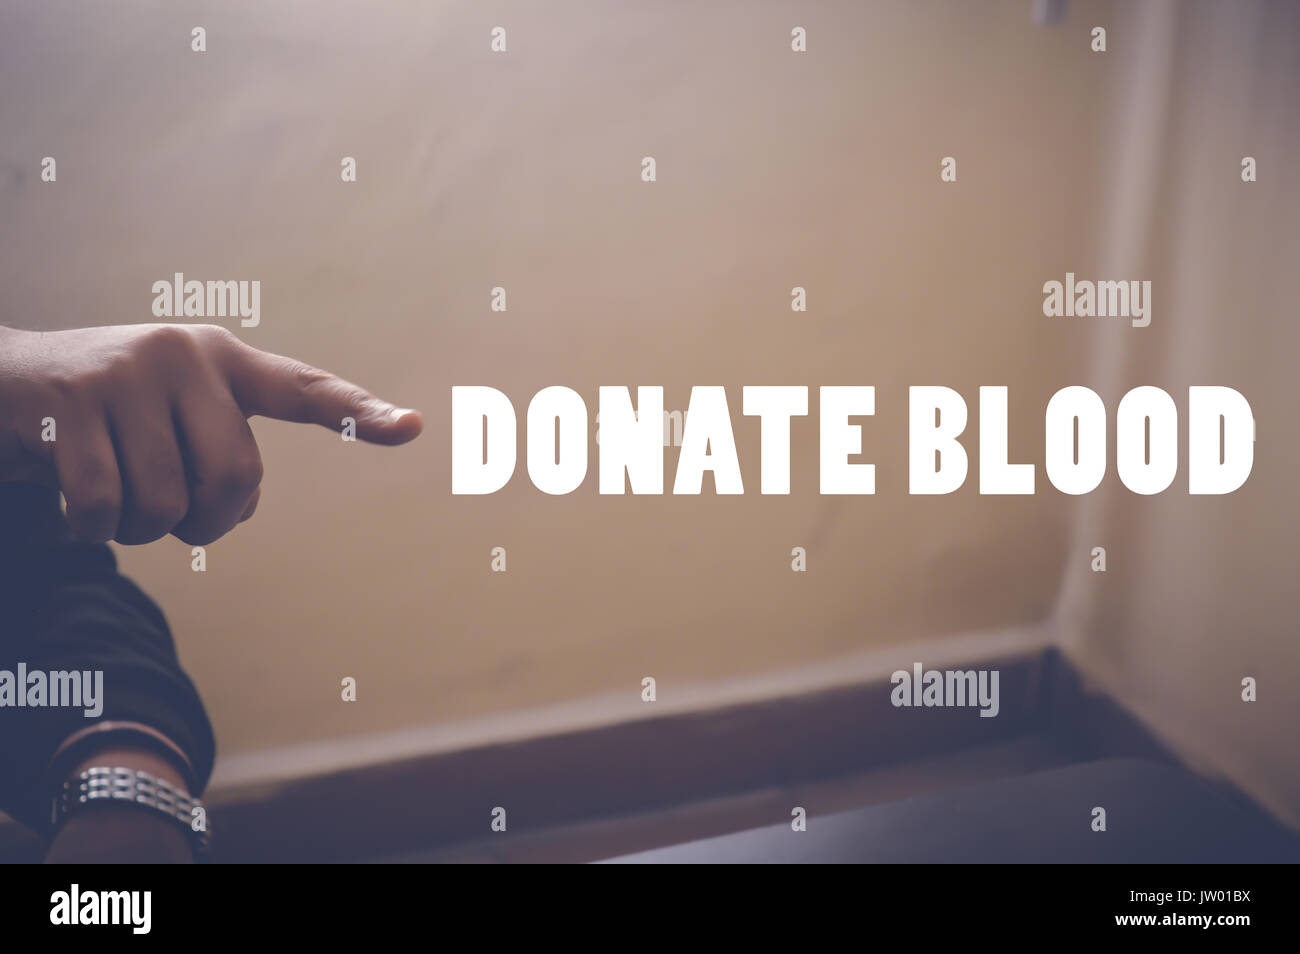 donate blood, health concept background - Stock Image